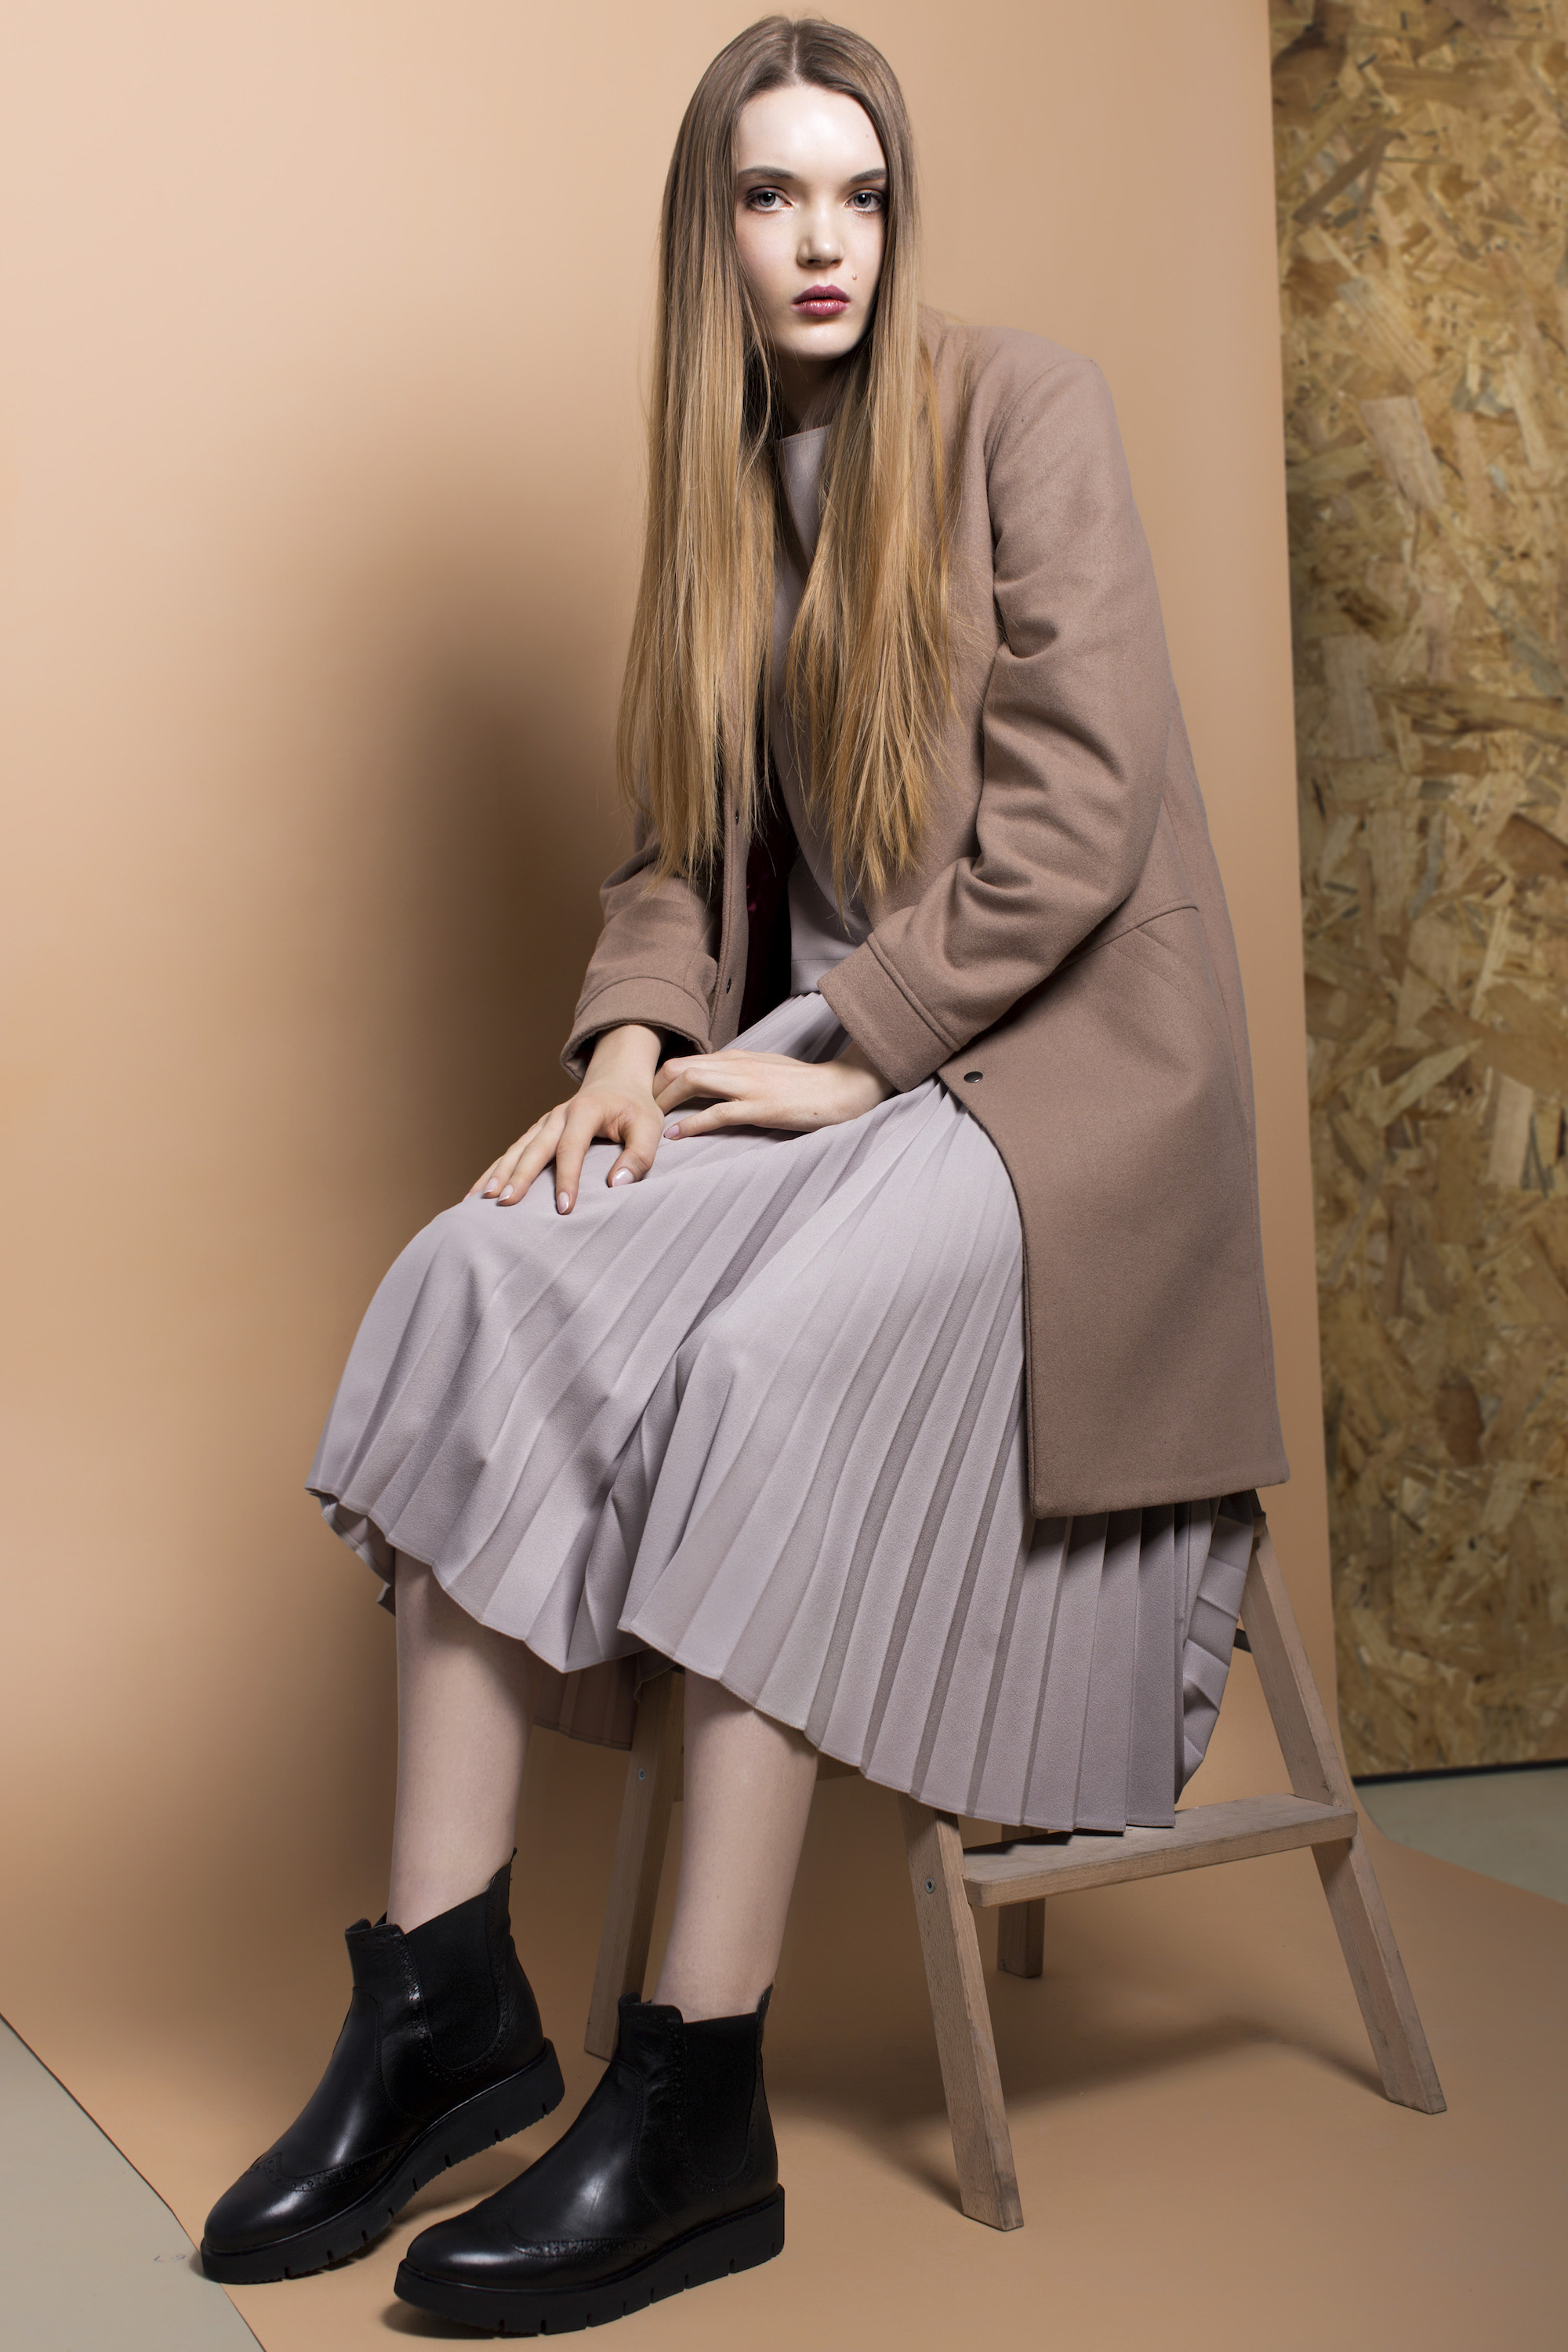 coat KEYCE, blouse and skirt PLISSIMA,shoes DEICHMANN